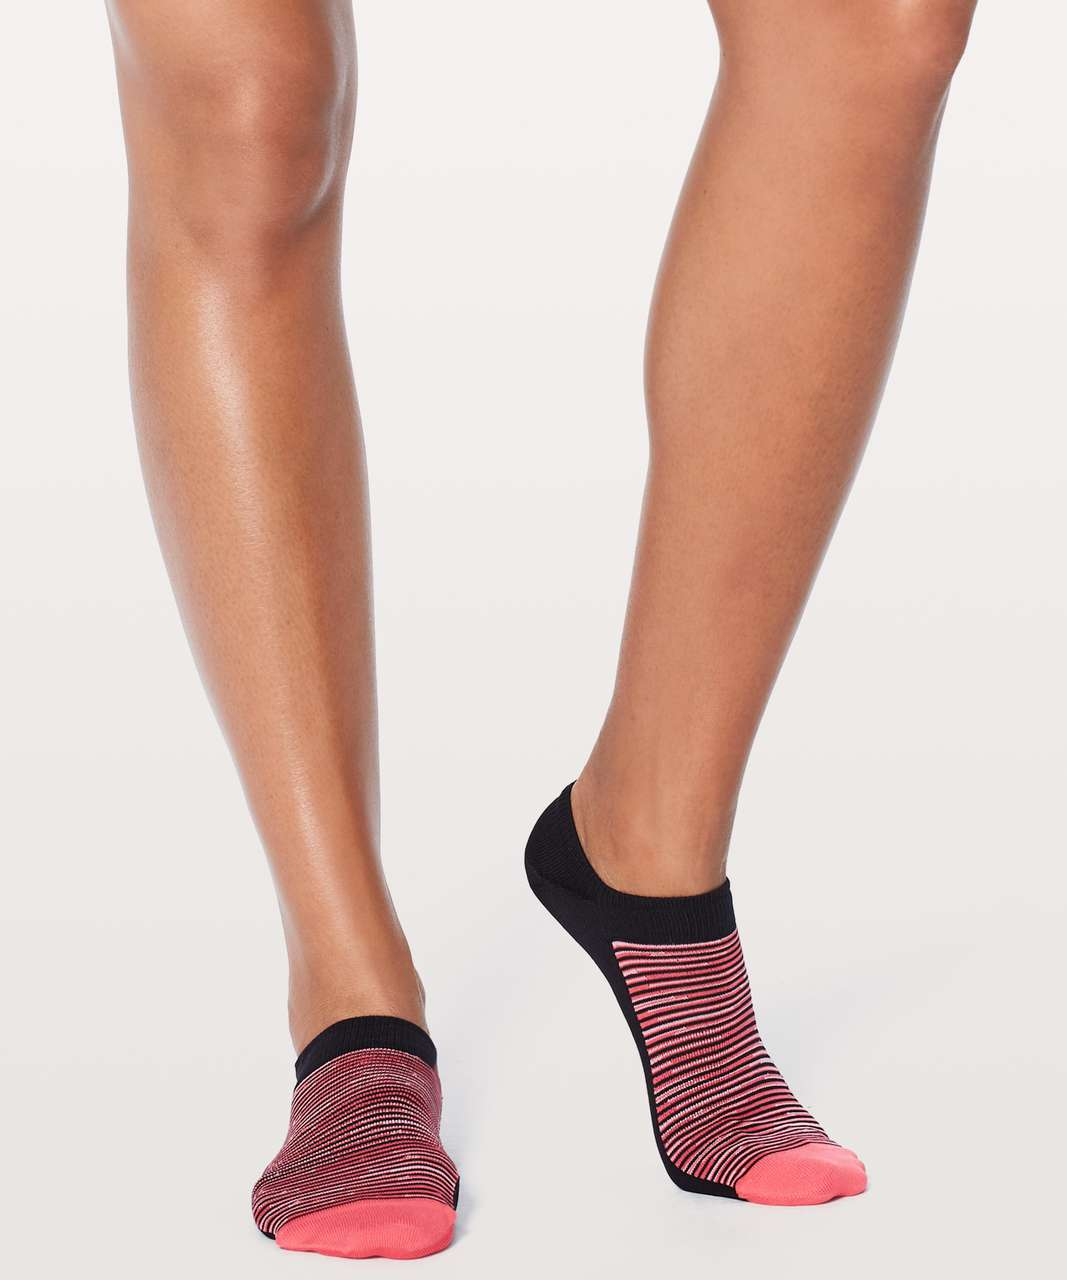 Lululemon Play All Day Sock - Coralize / Strawberry Shock / Black